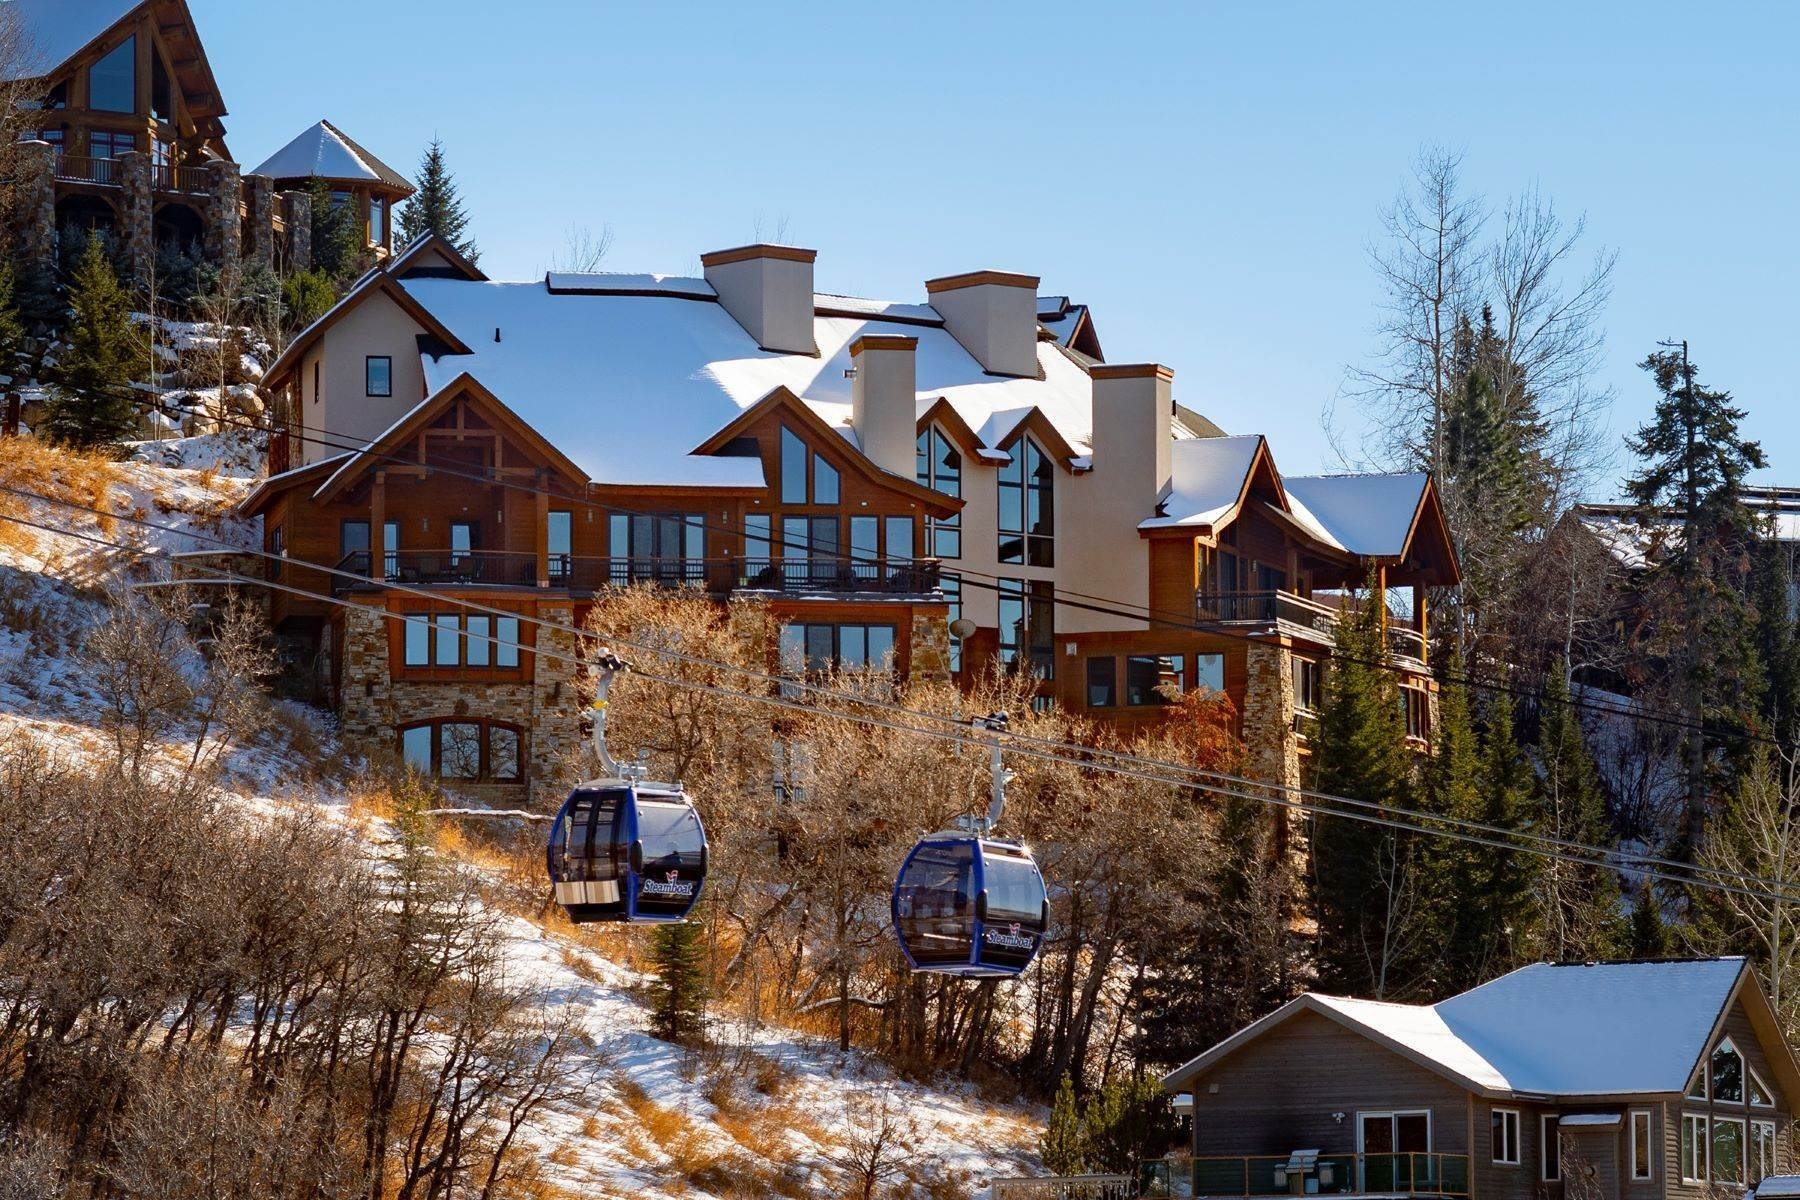 Property for Sale at Luxury Mountain Retreat Falconhead North 2605 Ski Trail Lane Steamboat Springs, Colorado 80587 United States